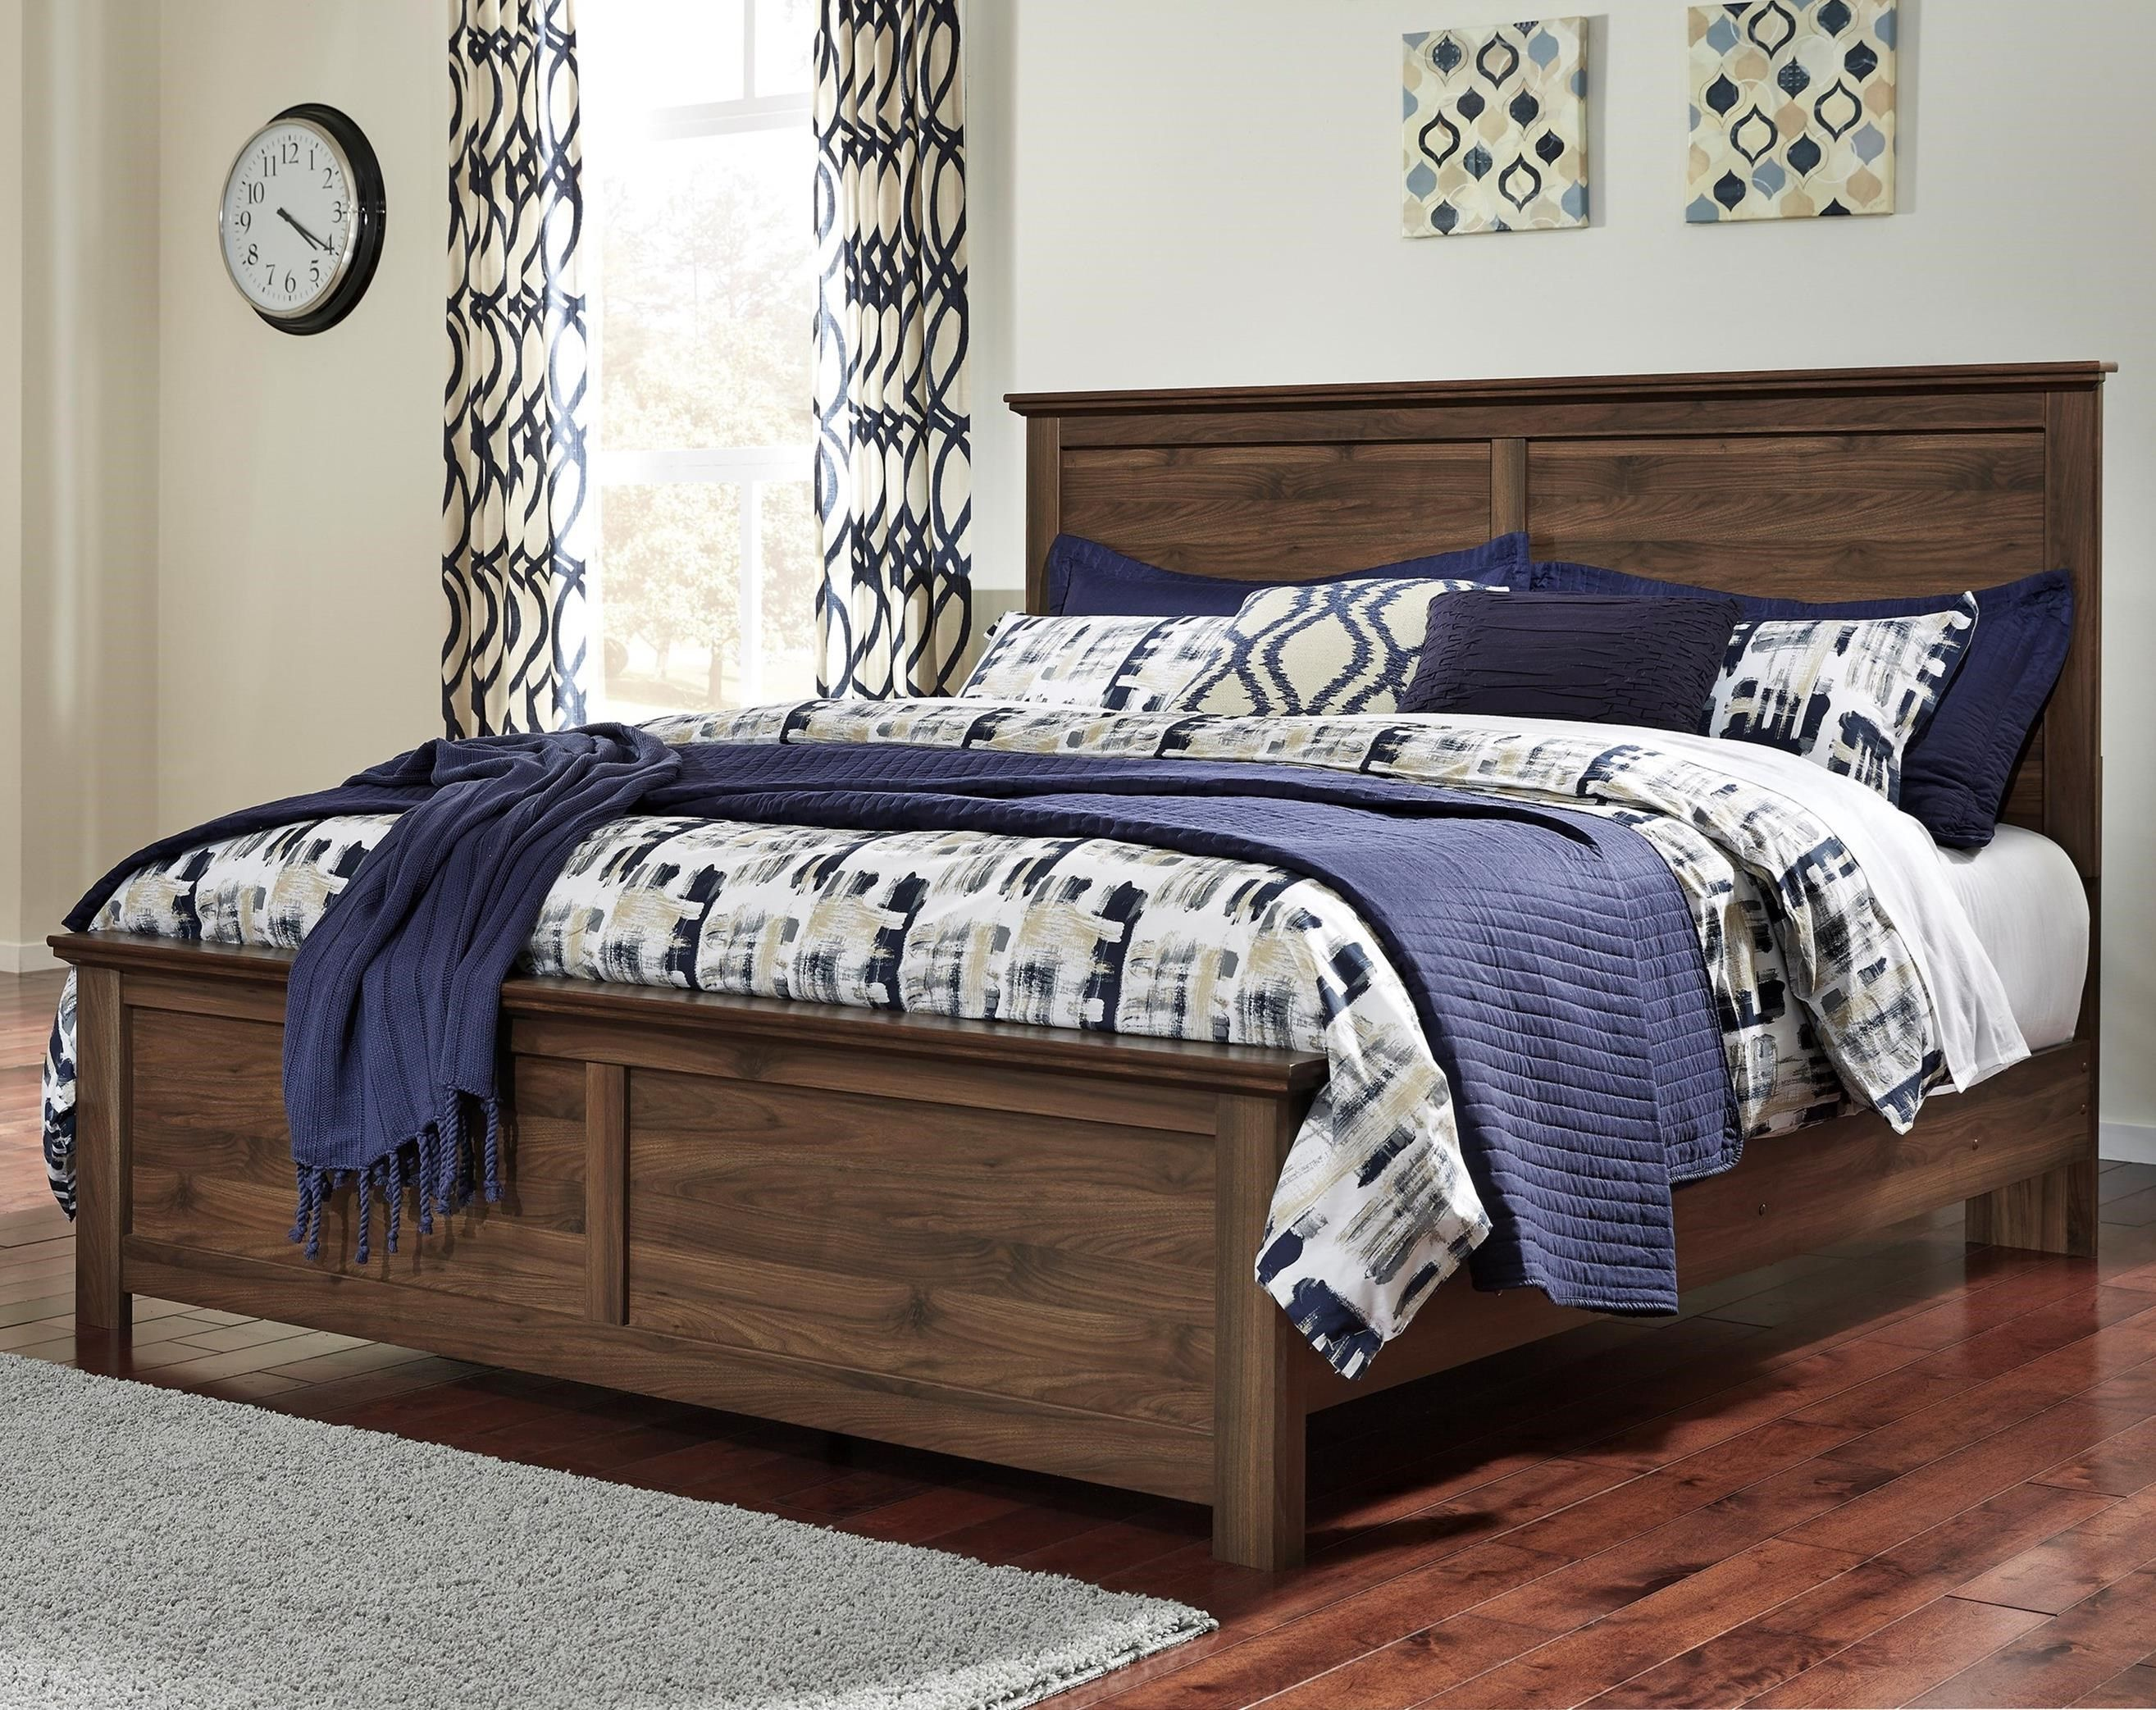 50+ Ashley furniture bedroom sets jamaica ideas in 2021